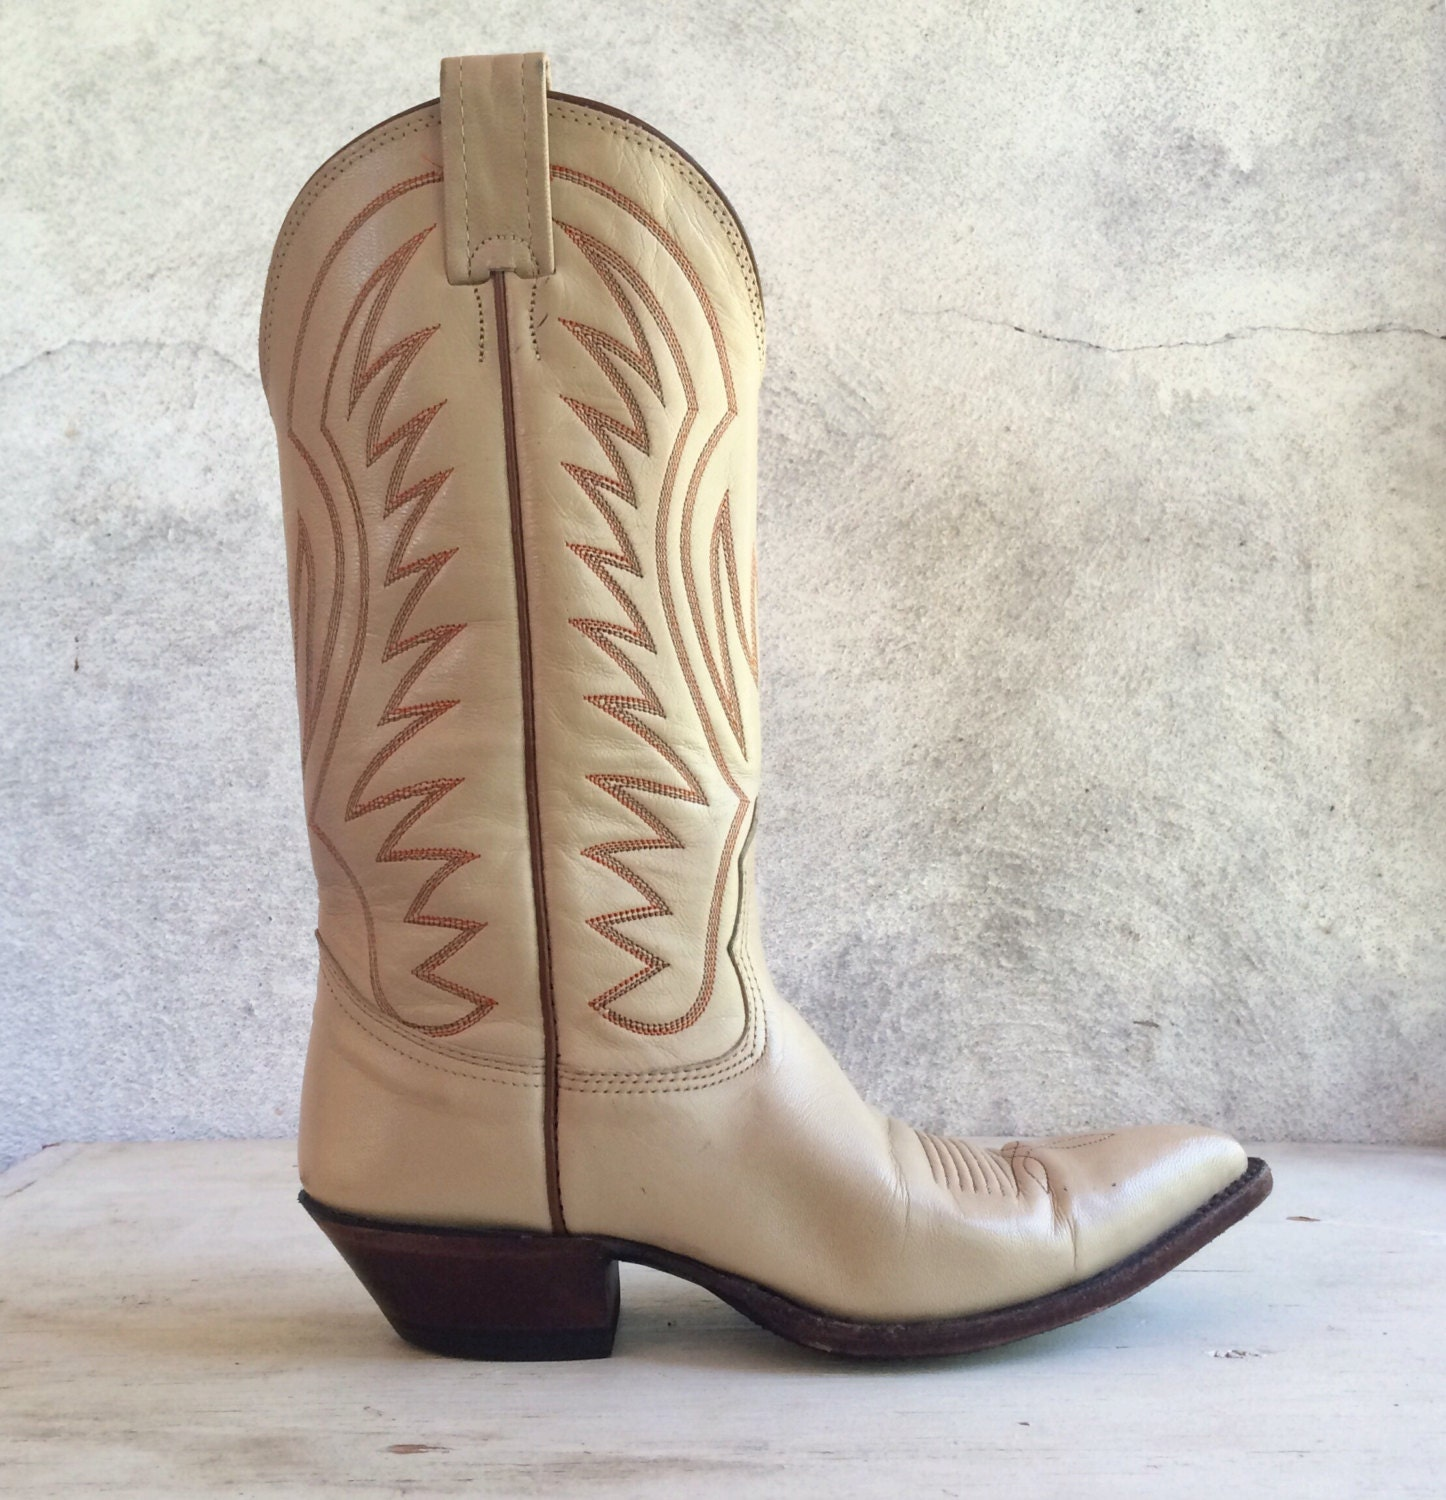 Lucchese M3504 & M3828 Womens Multi-Color Shaved Stingray ...  |Cowboy Boots With Colored Tops